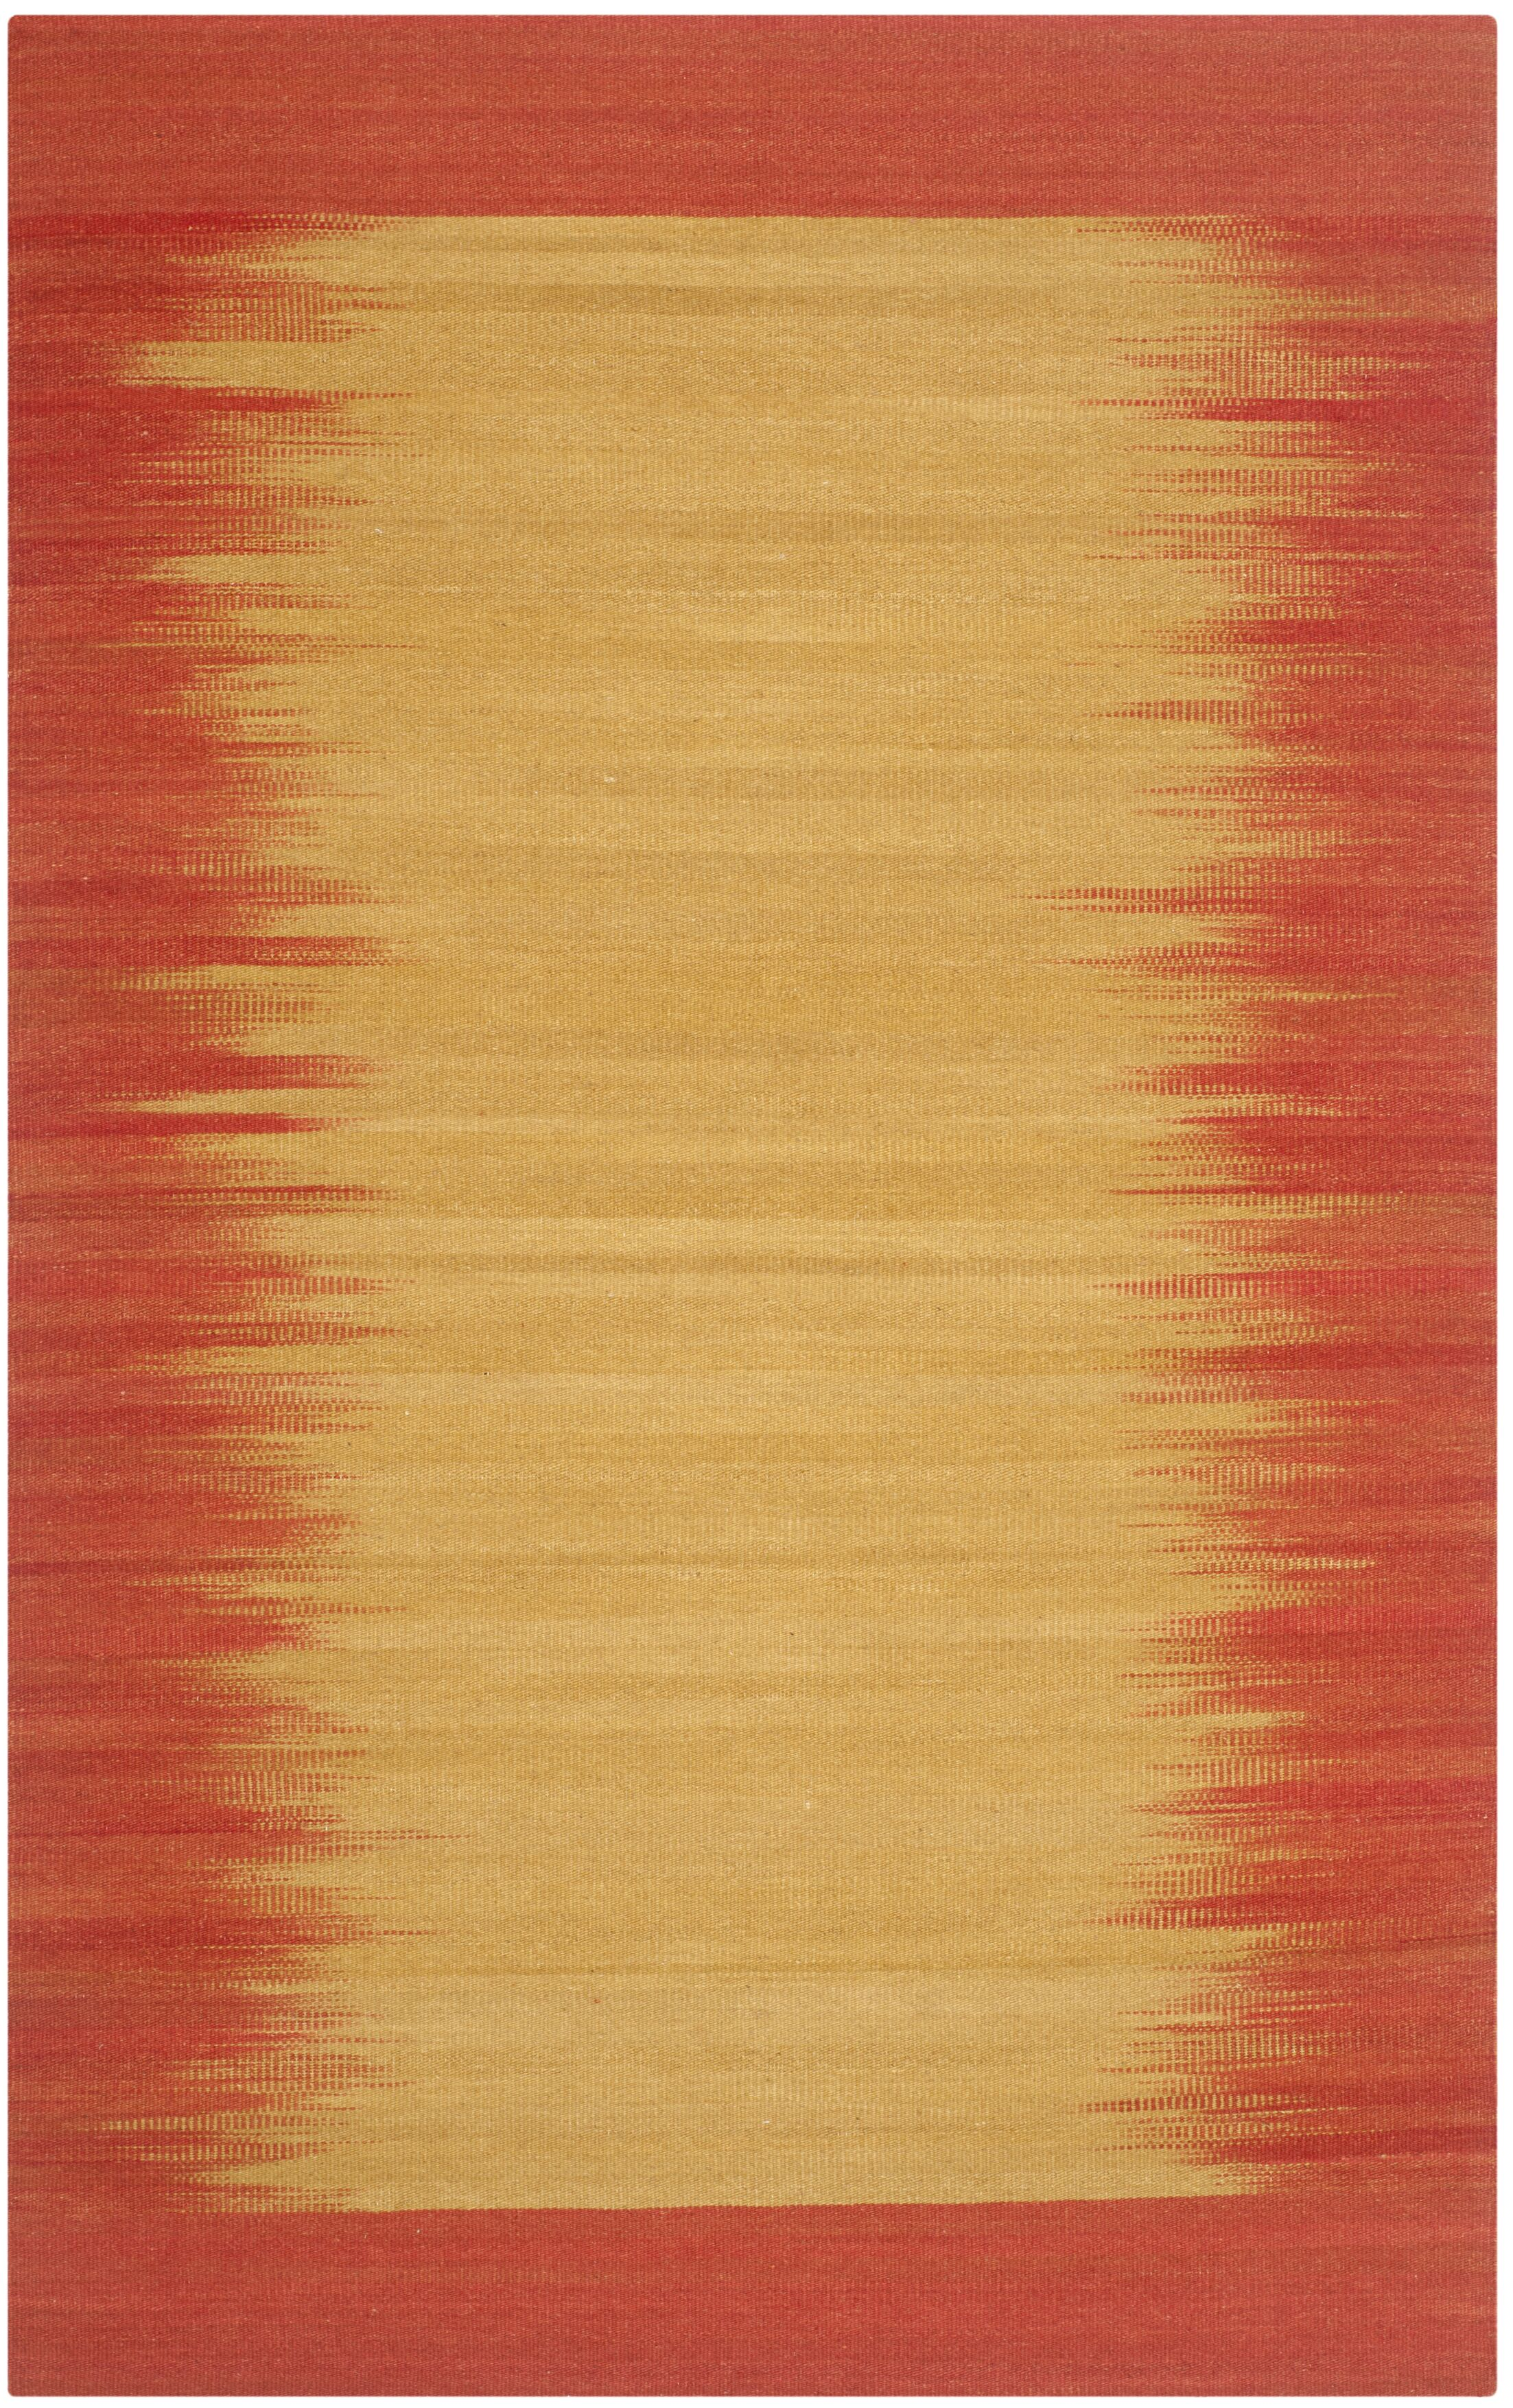 Carper Hand-Woven Rust Abstract Area Rug Rug Size: Square 7' x 7'